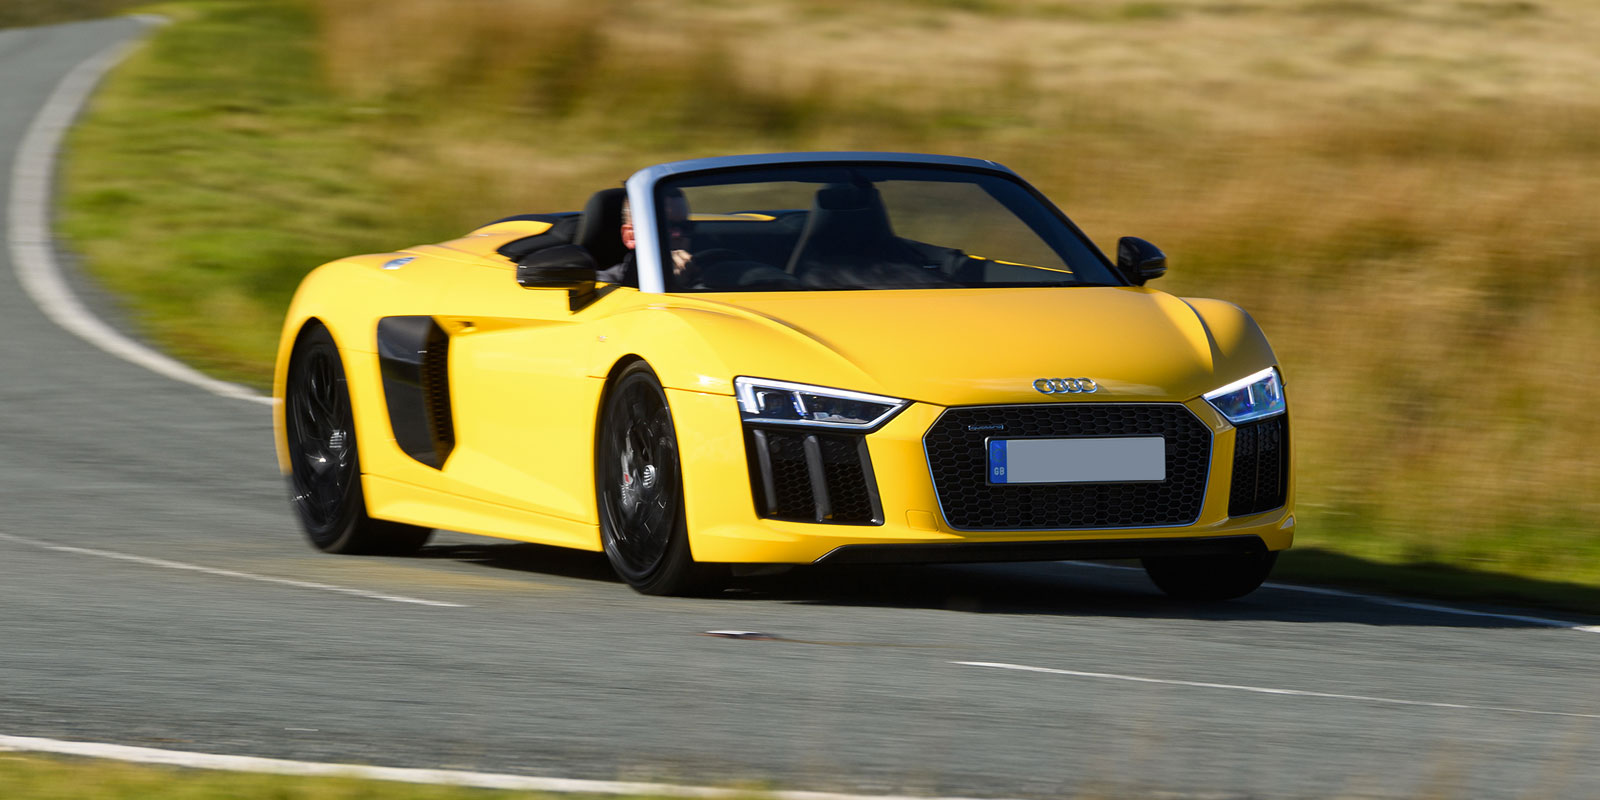 The Best Convertibles And Cabriolets On Sale | Carwow